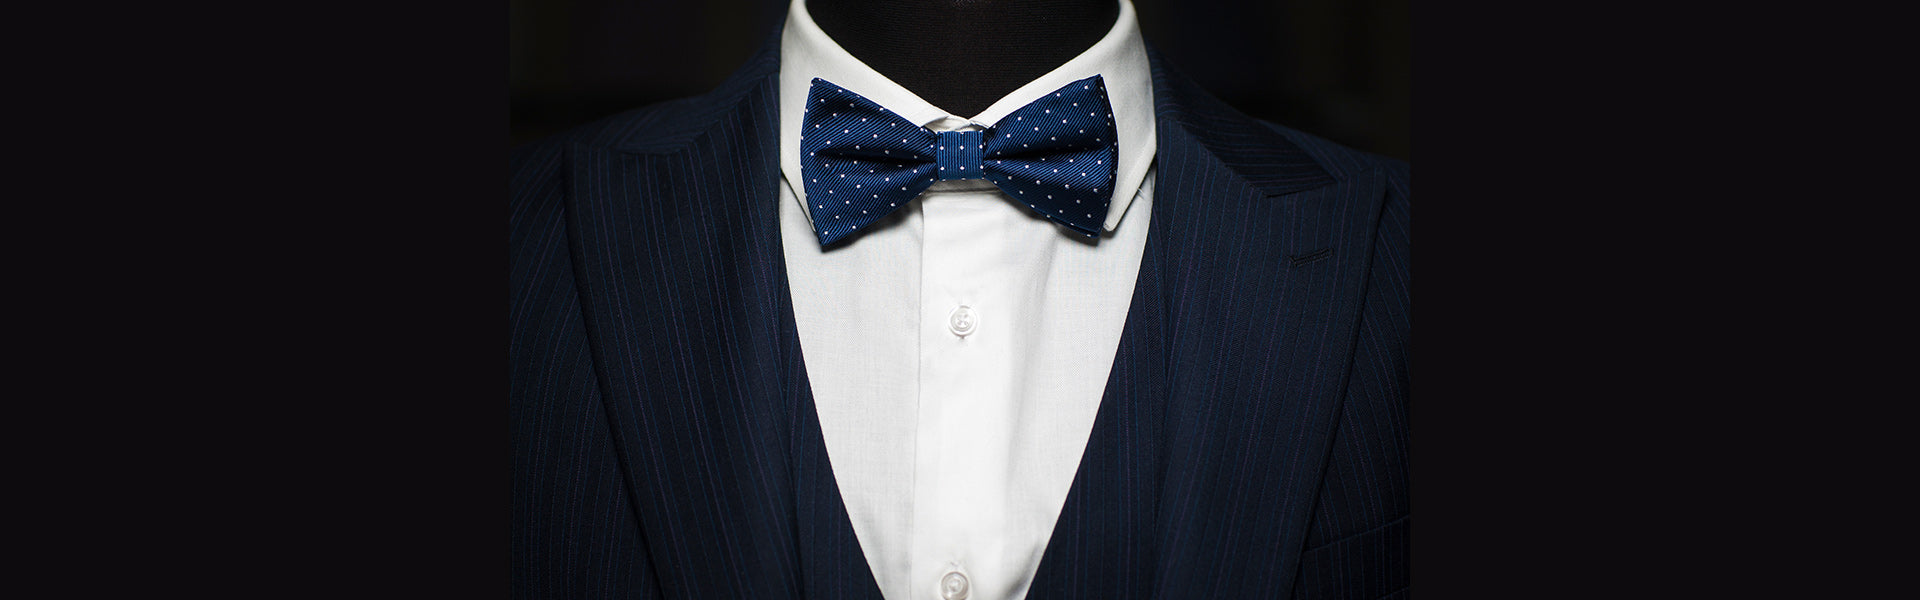 Gifts Are Blue Mens Tie Collection